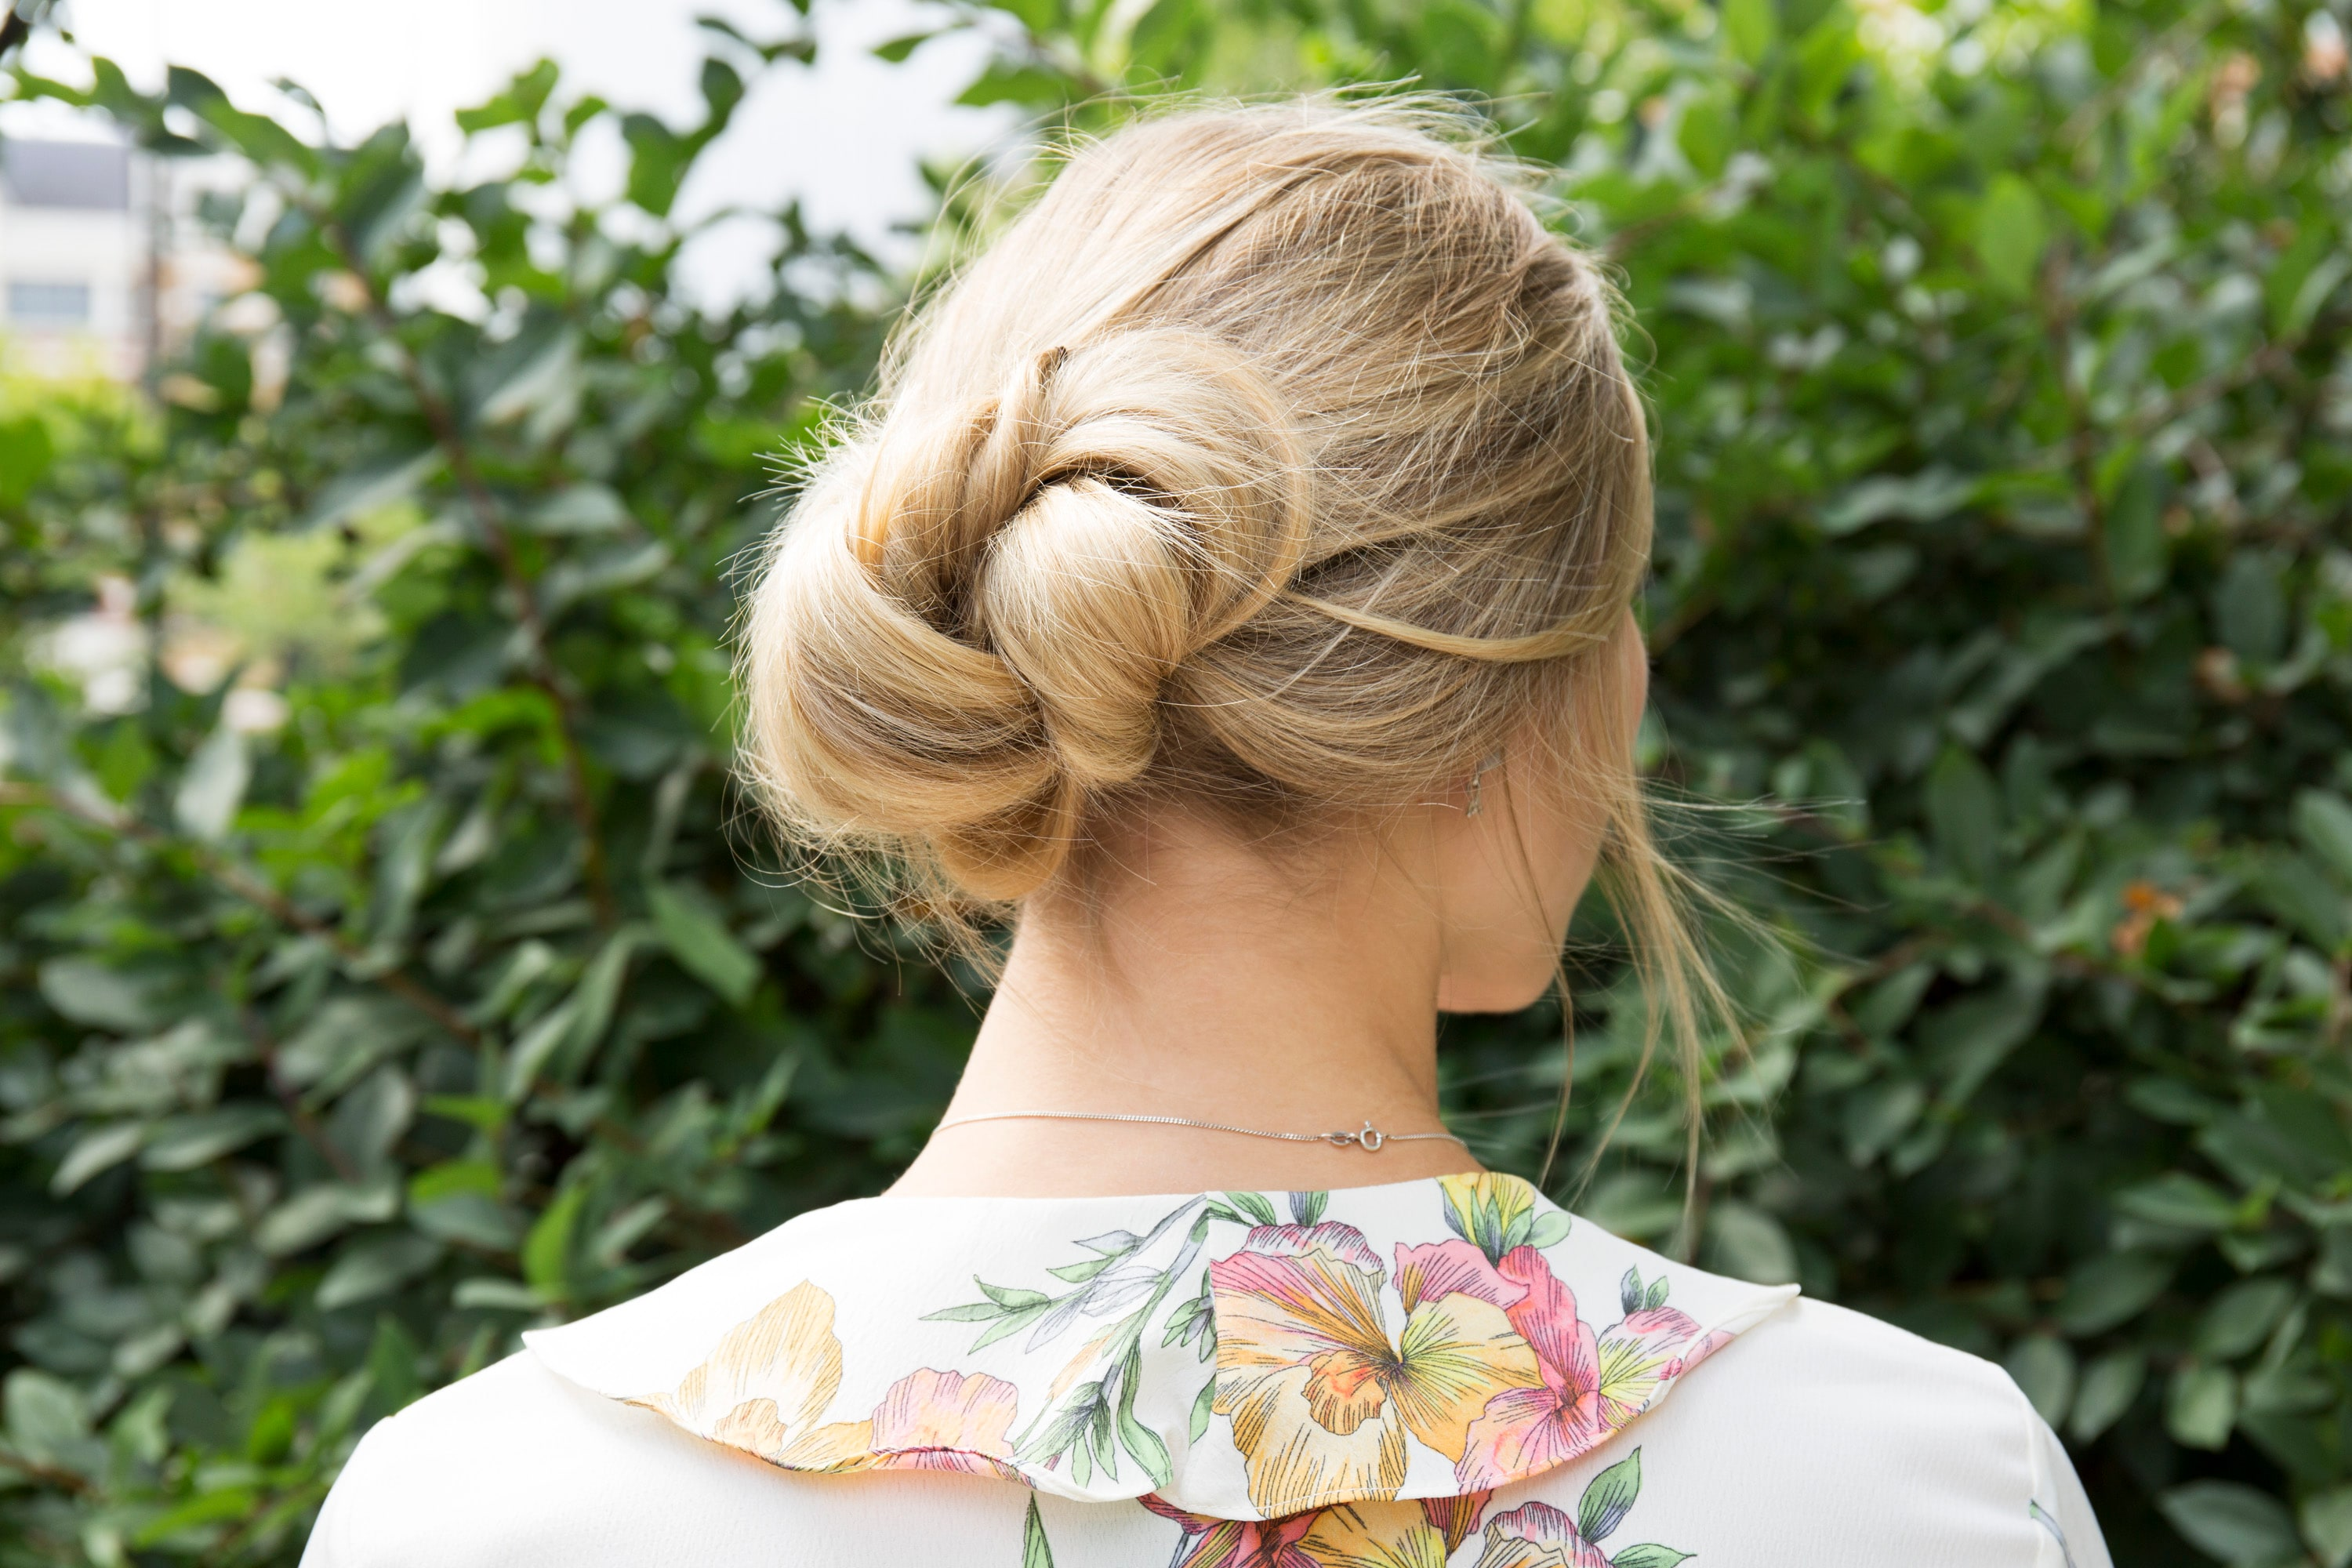 low bun hairstyles: close up shot of model with banana bun hairstyle, wearing floral dress